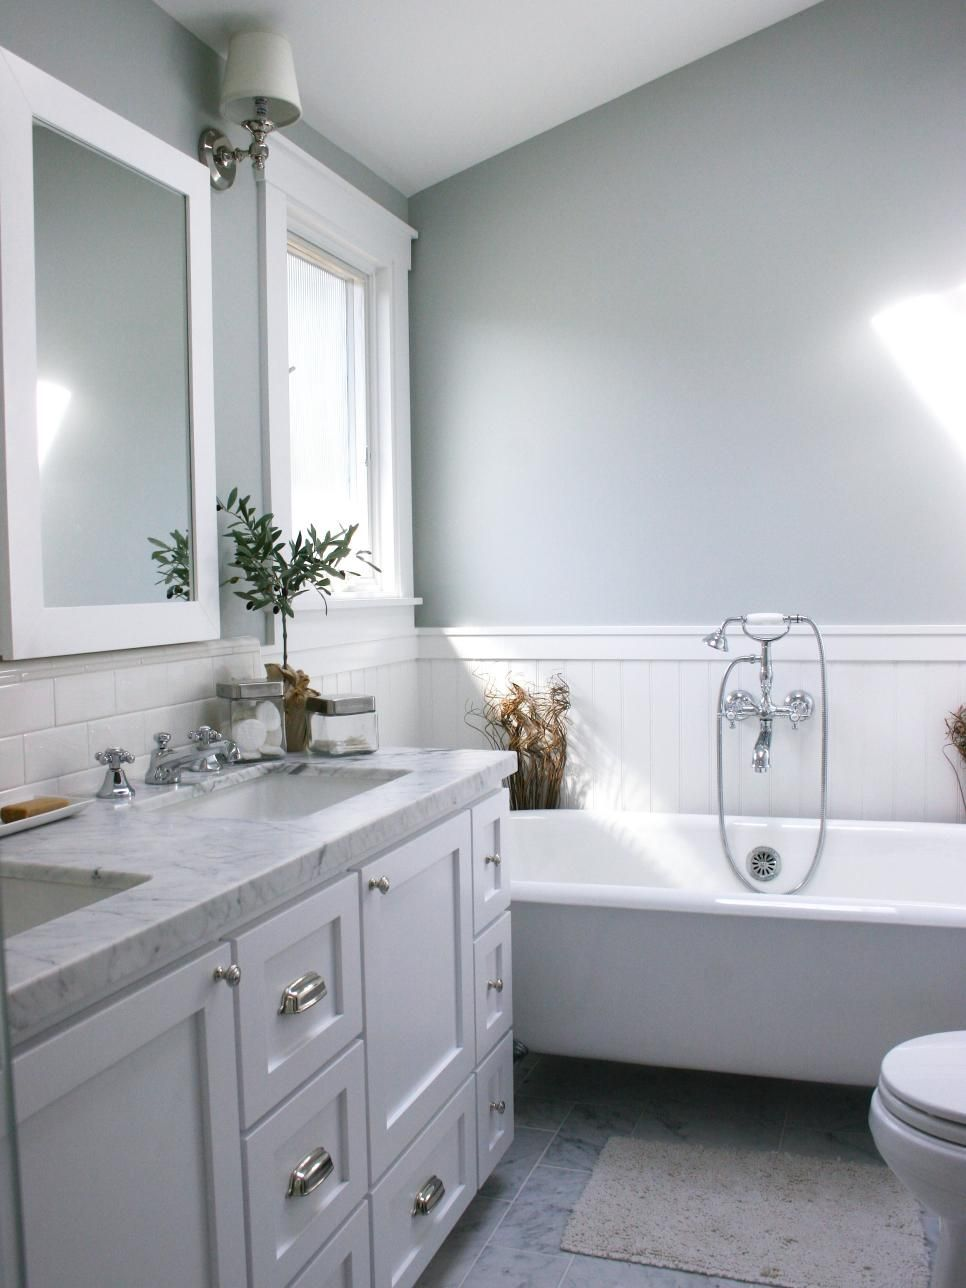 A White Bathtub Backsplash Tile Mirror And Window Frame Contrast With The Gray Walls Marble Bathroom Vanity In This Small That Has